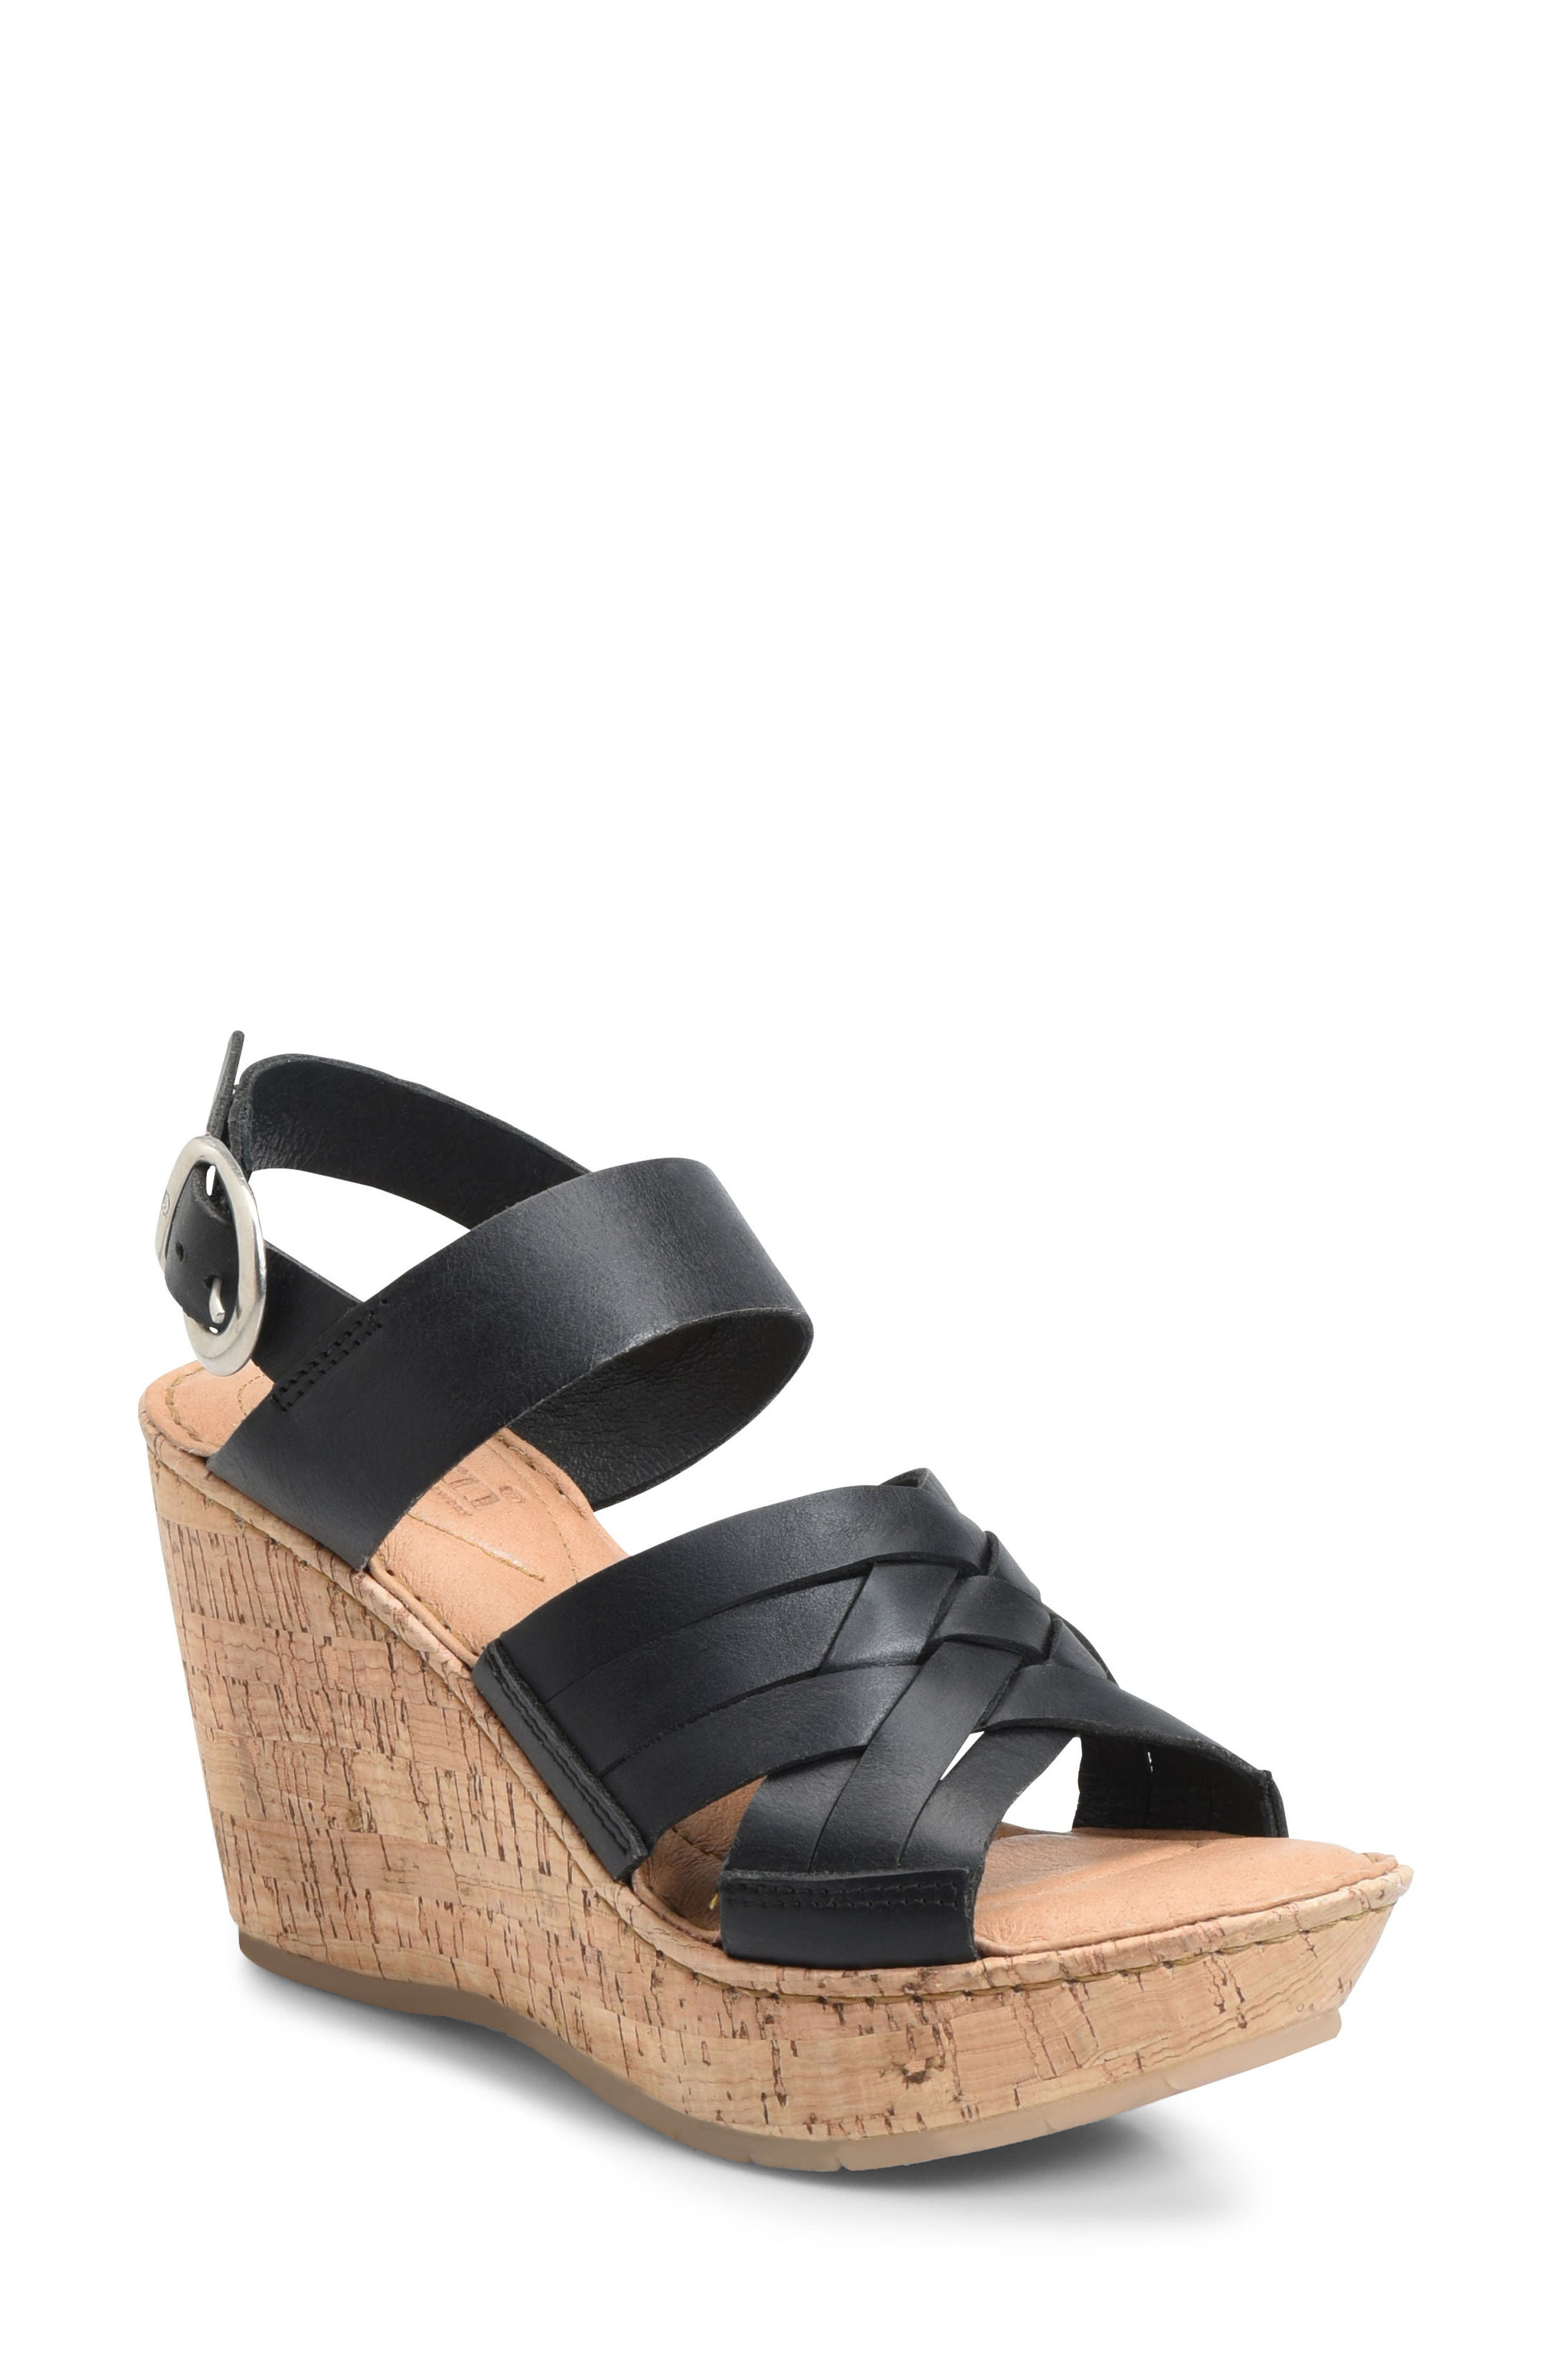 Wedges for Women On Sale, Black, Black, 2017, 3.5 Guess